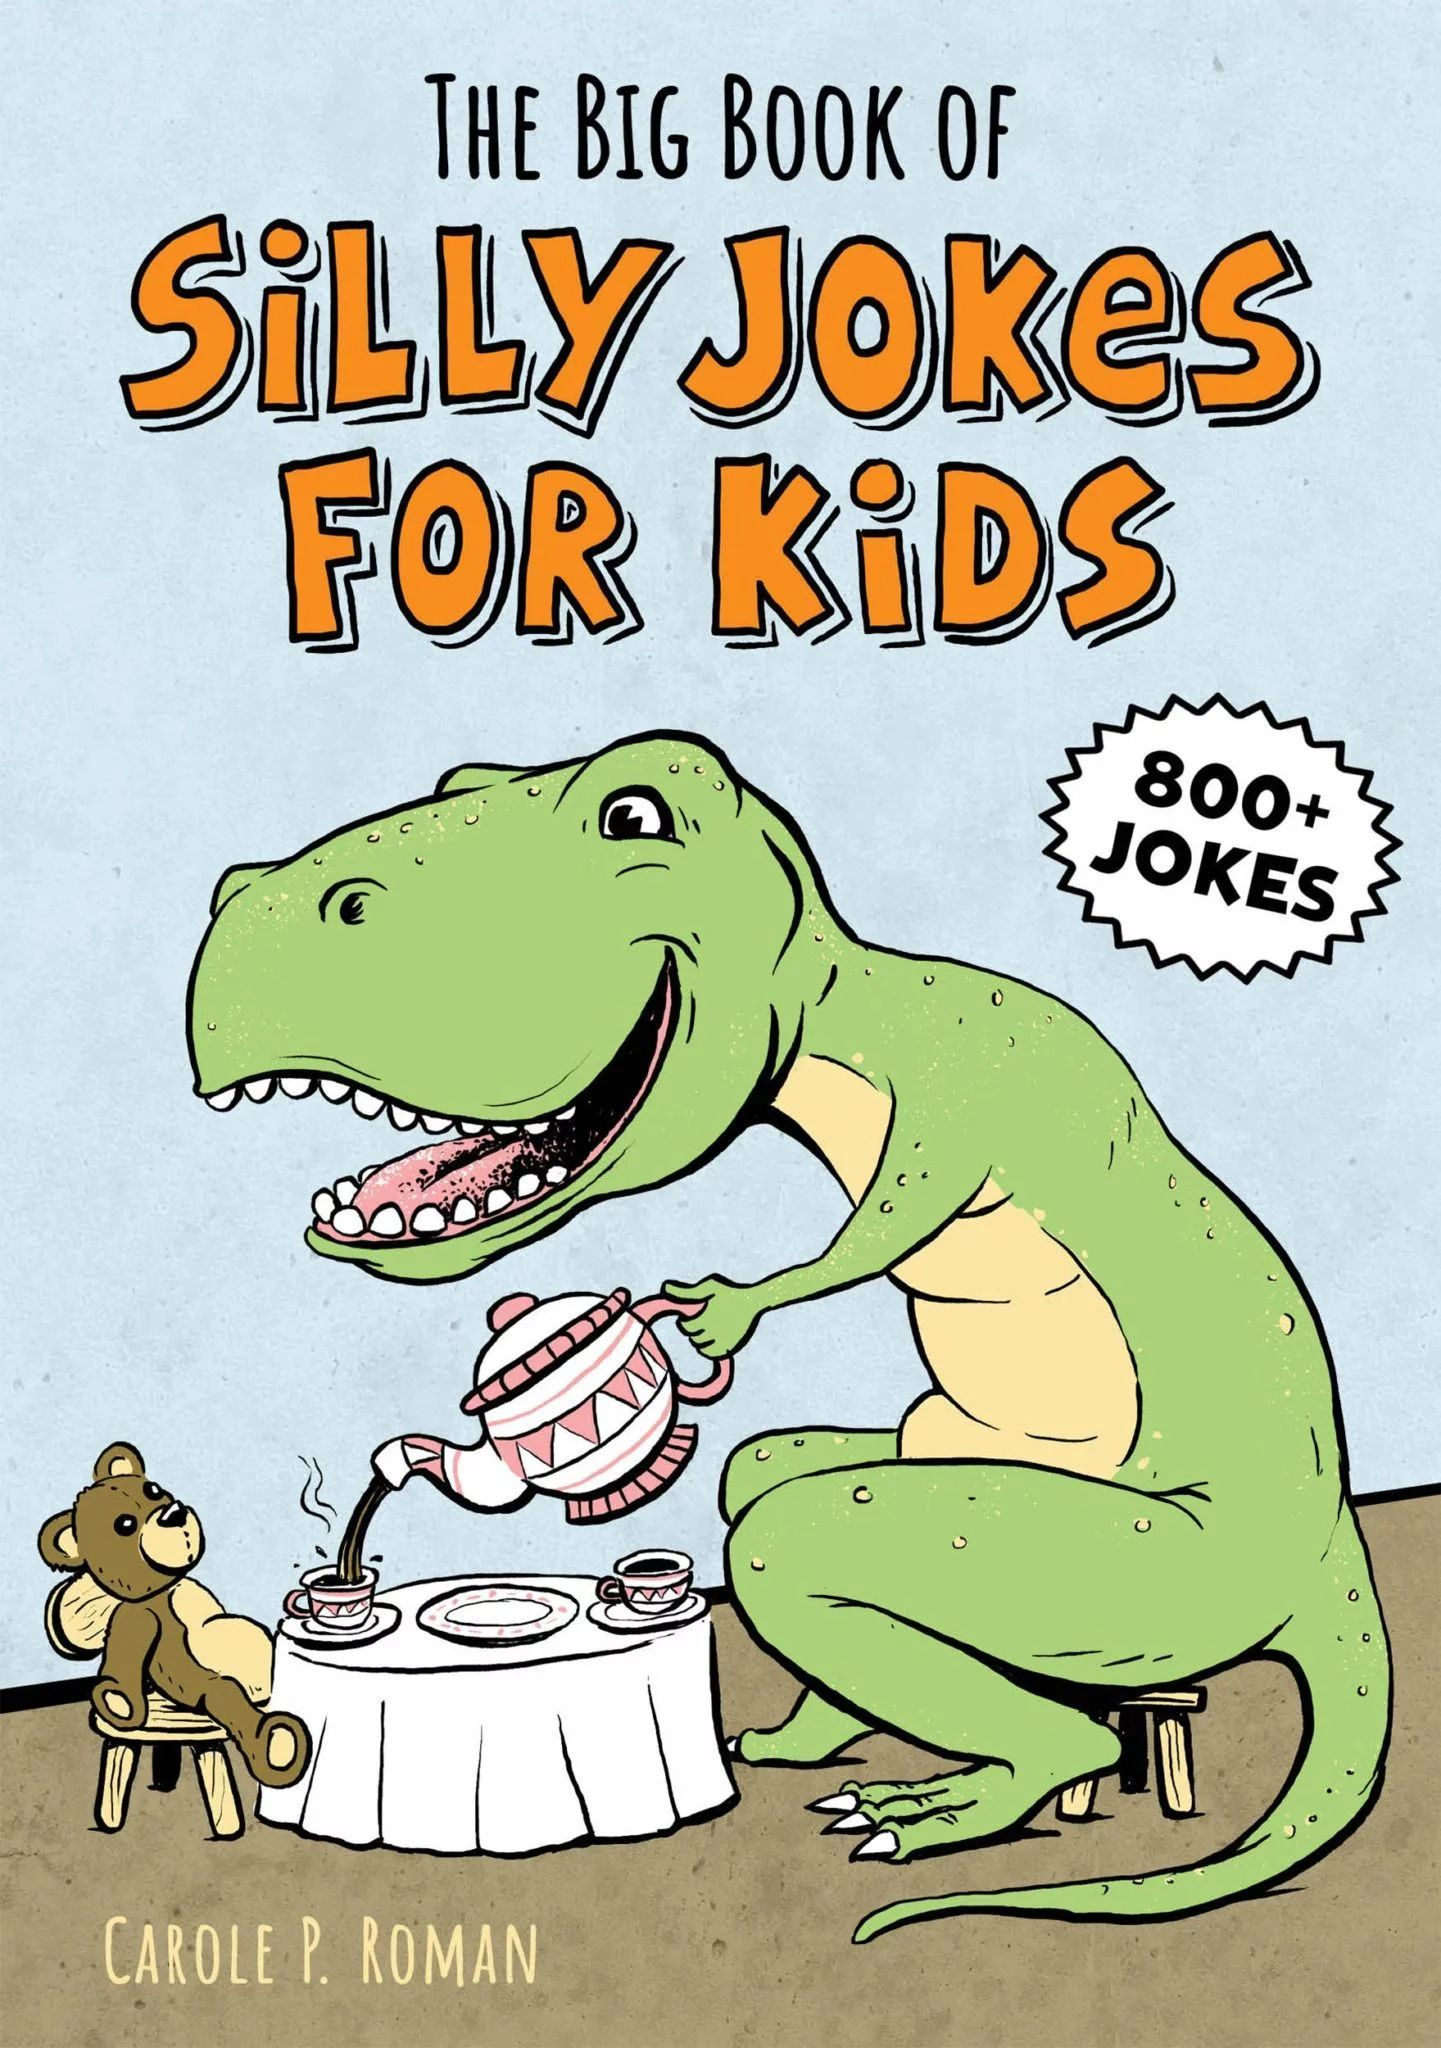 A KidFriendly Joke Book that will tickle Everyone's Funny